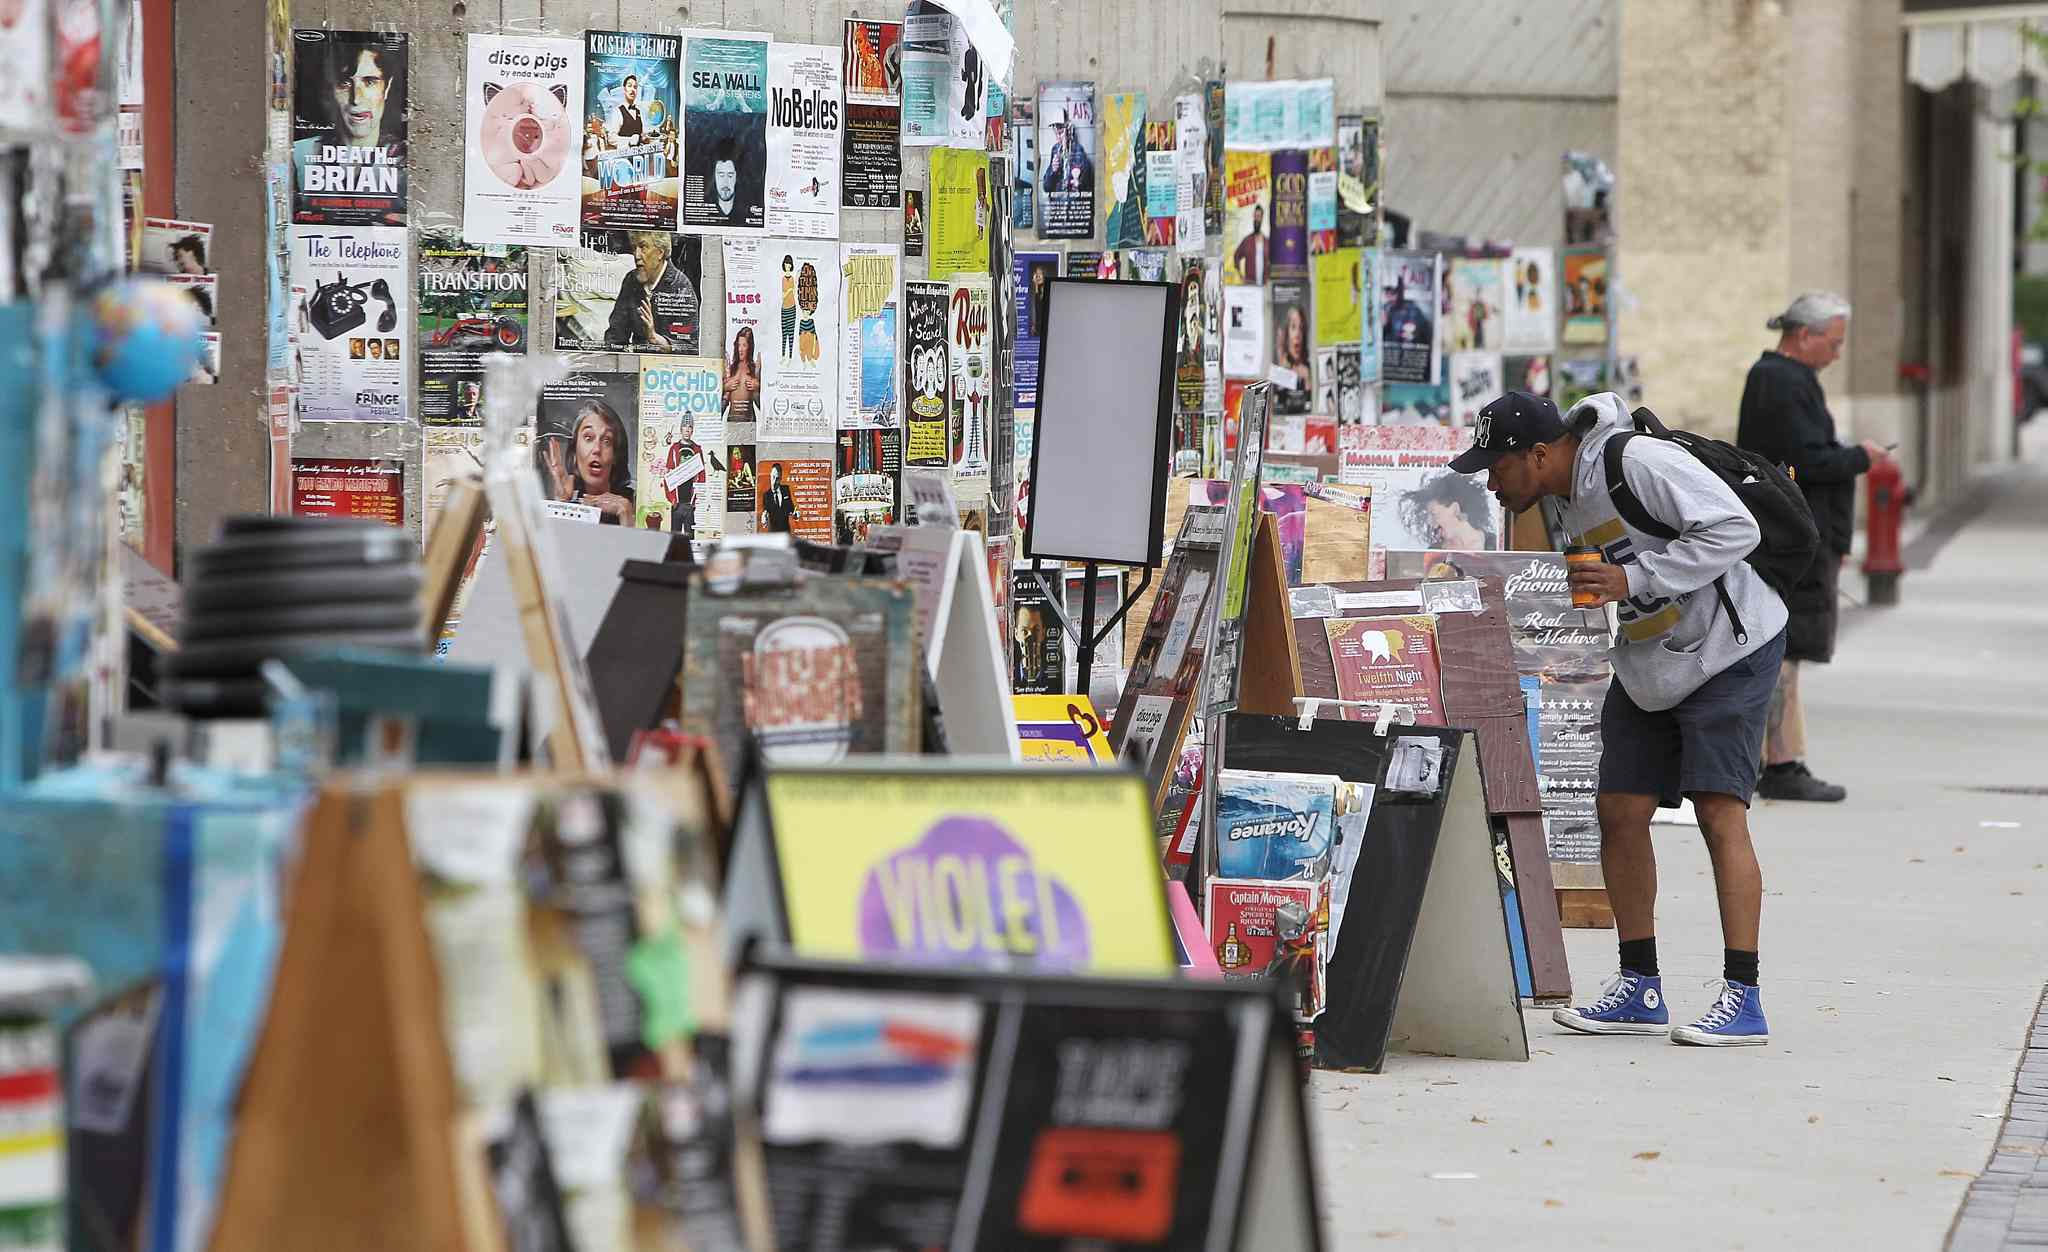 A man checks out Fringe Festival signs while walking along Market Avenue towards the Royal MTC. (Mike Deal / Winnipeg Free Press)